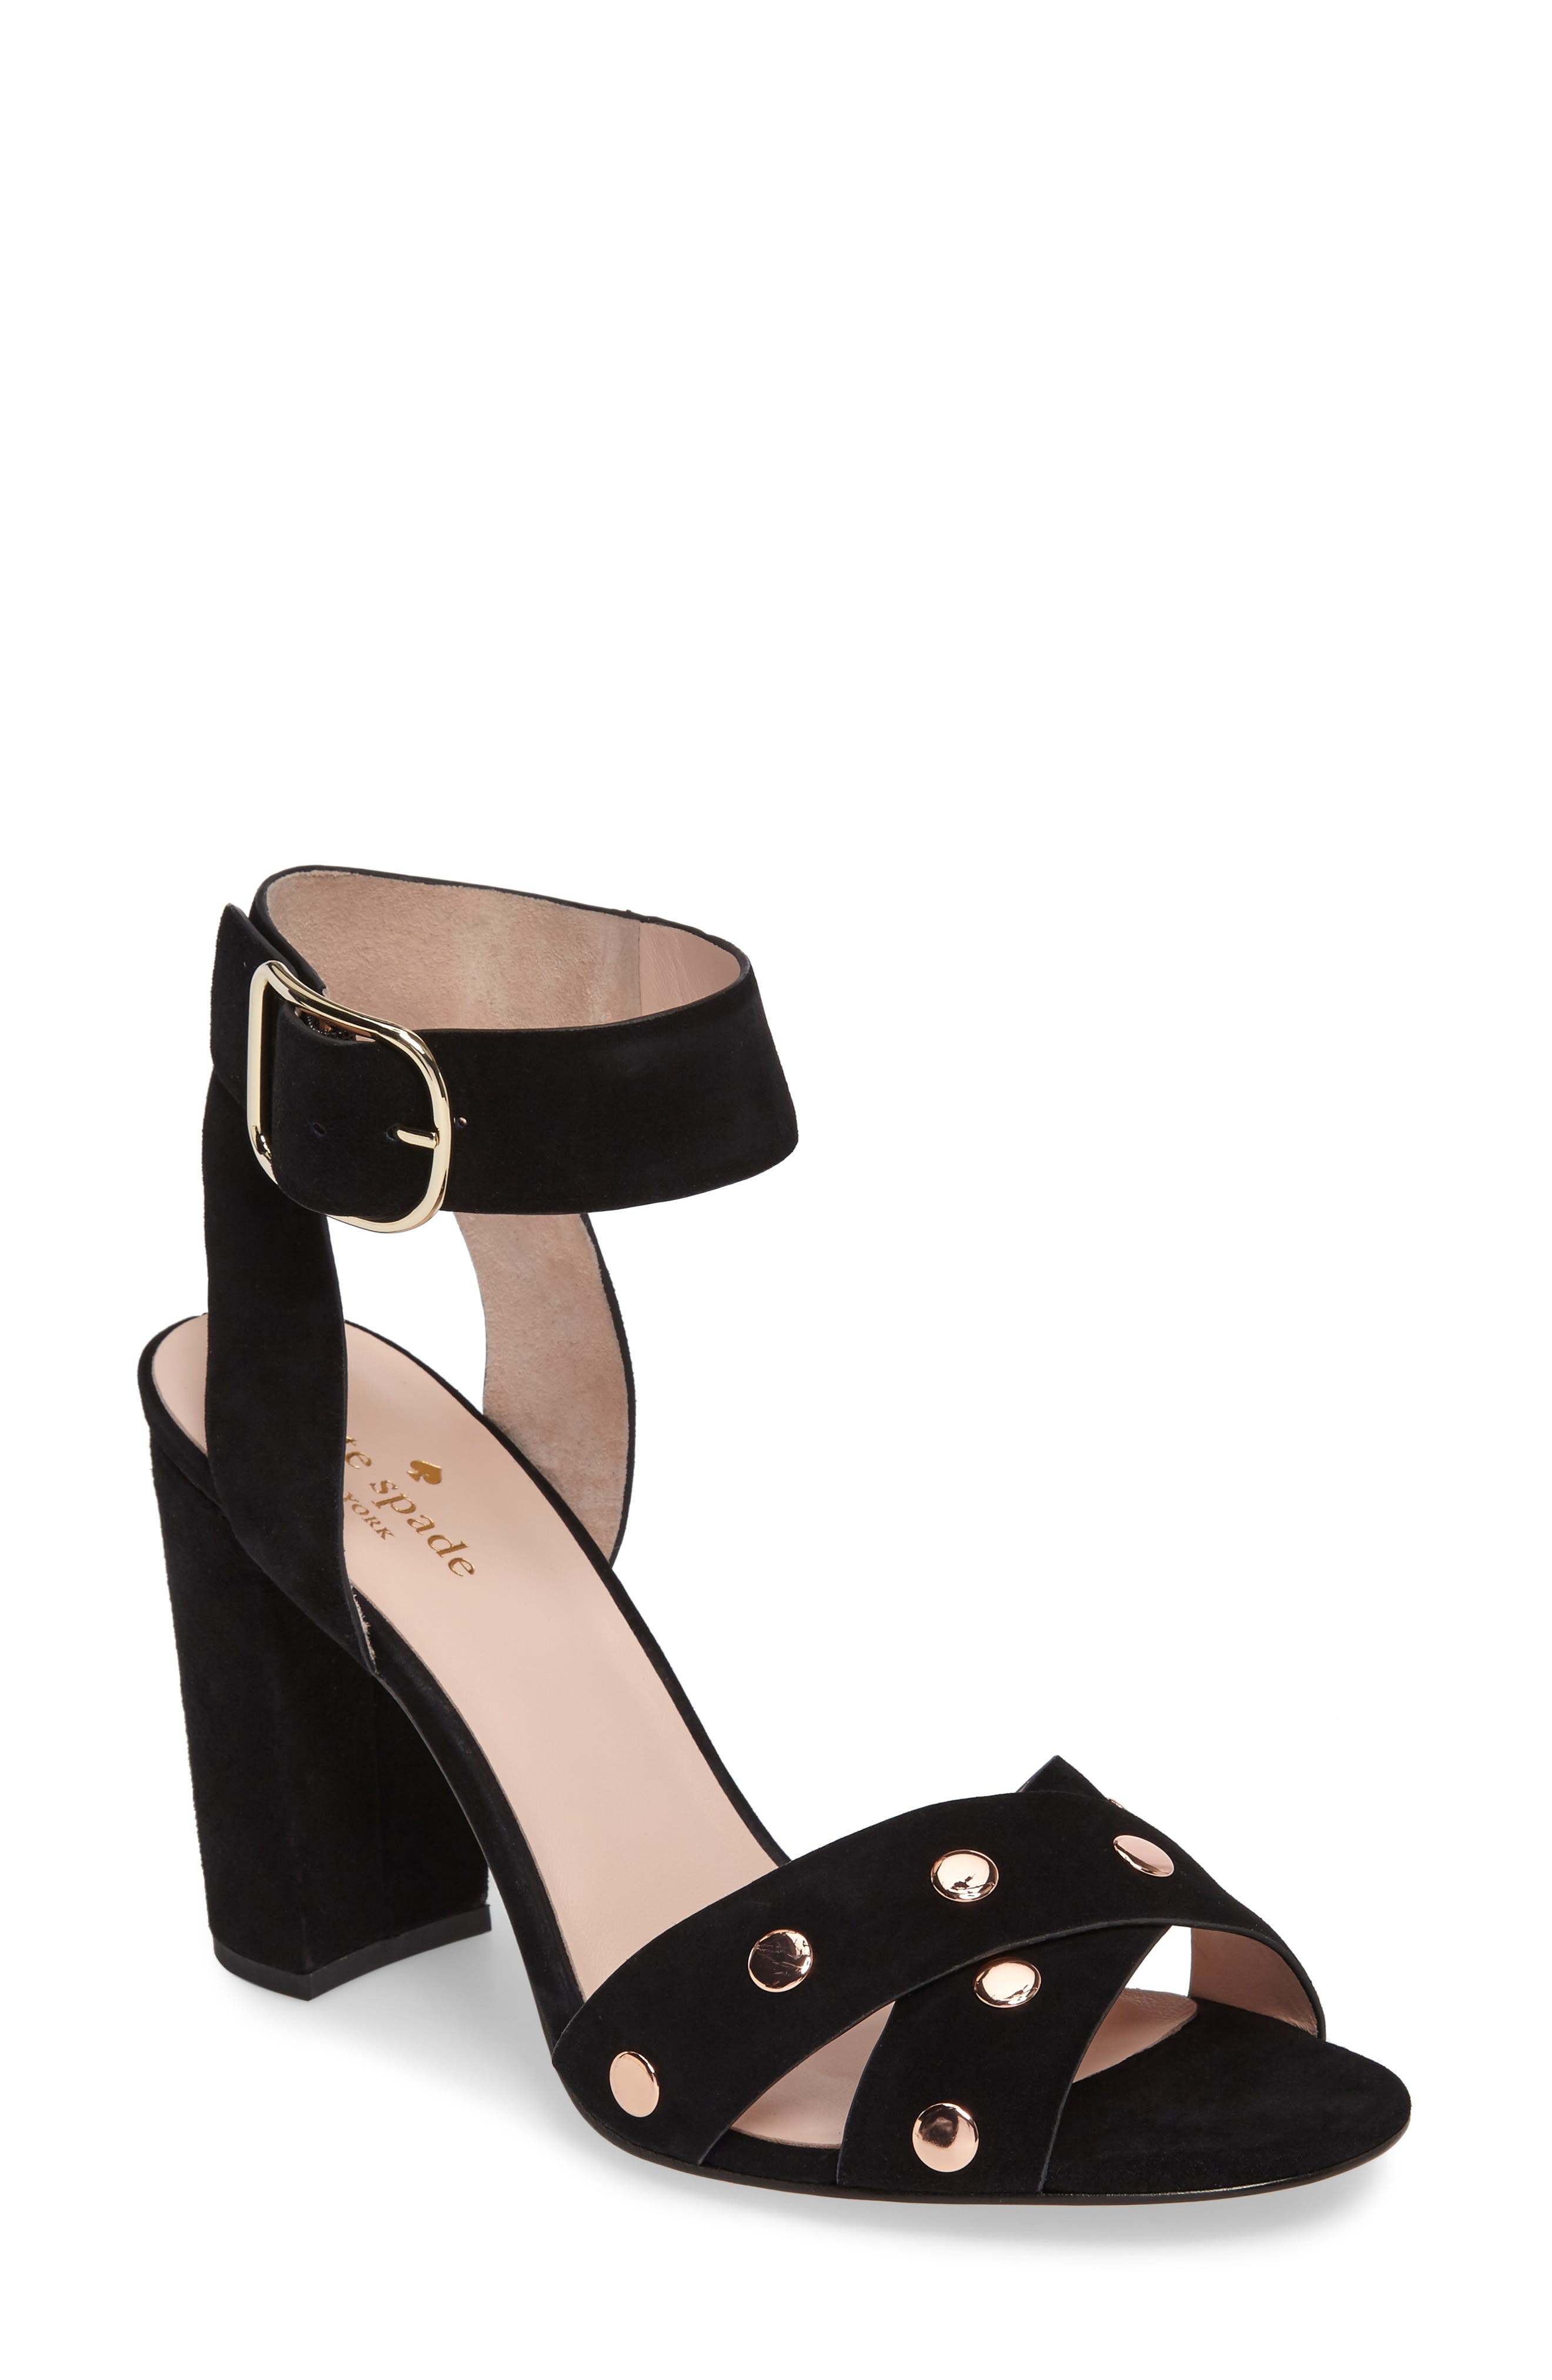 kate spade new york oakwood sandal (Women)